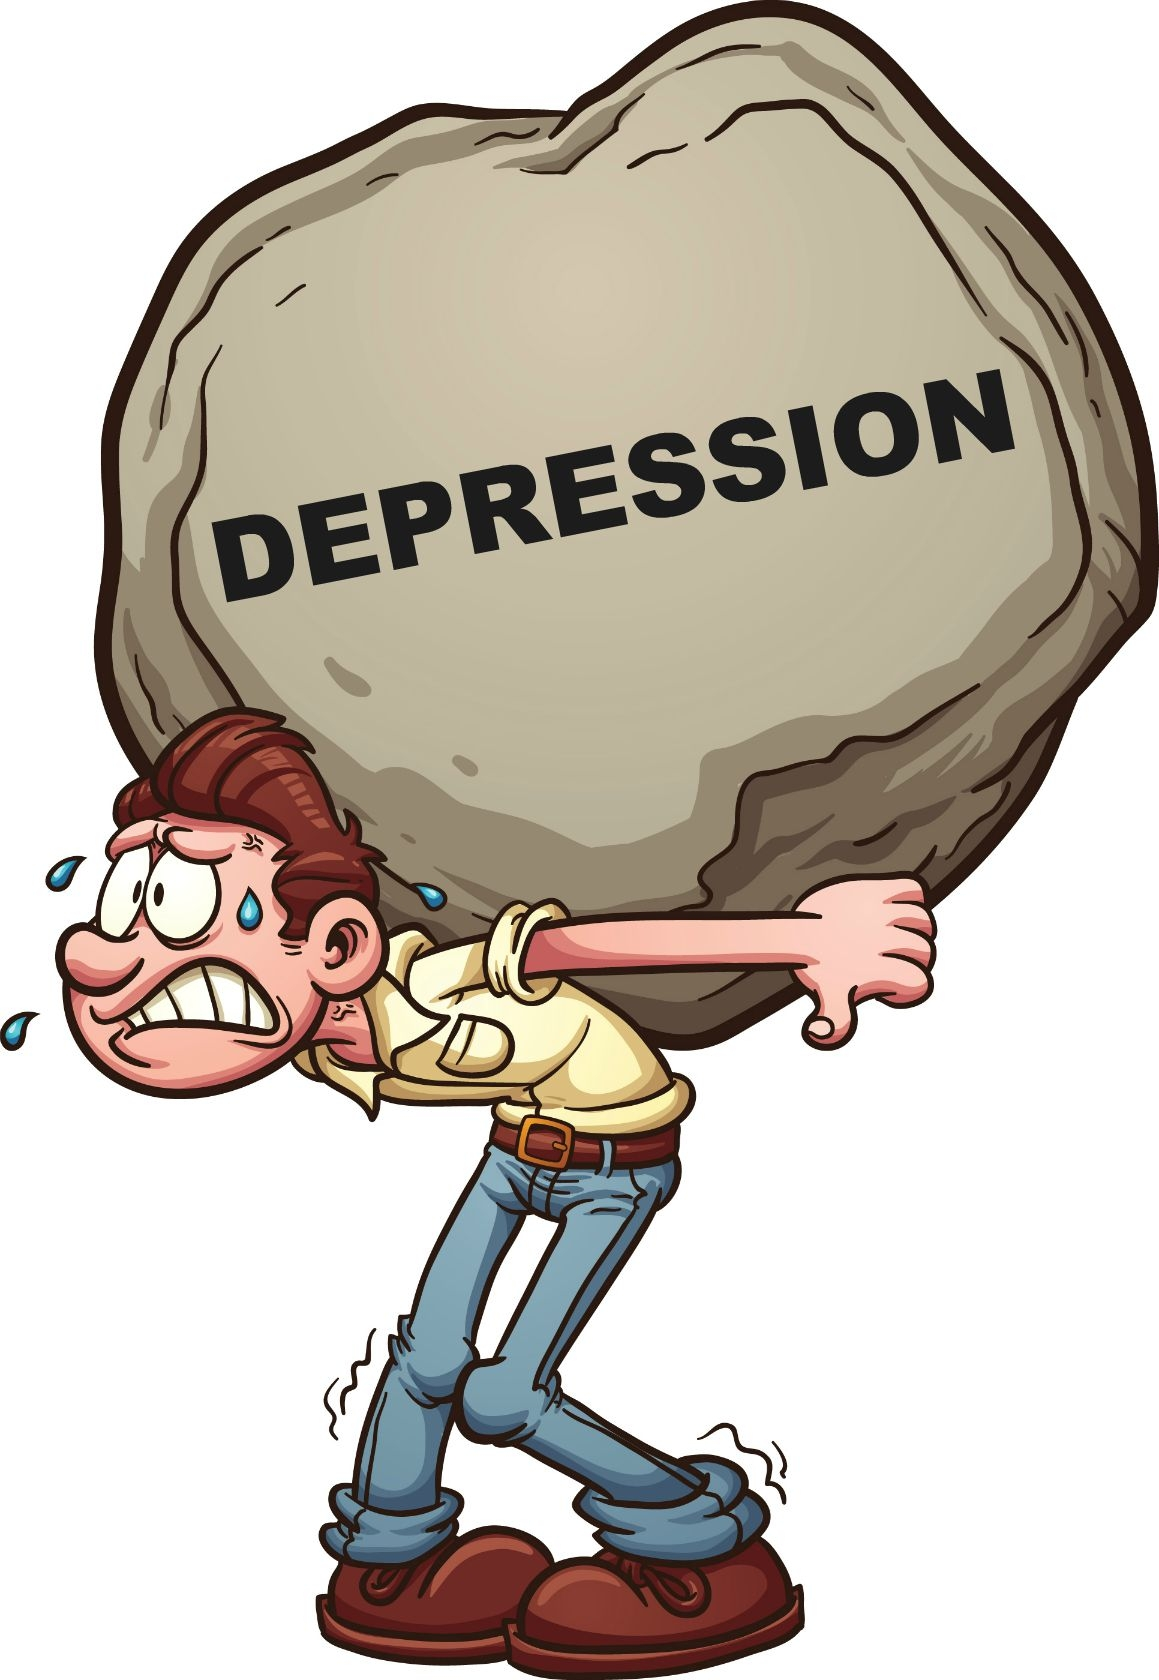 Depression clipart. Best of design digital png black and white library